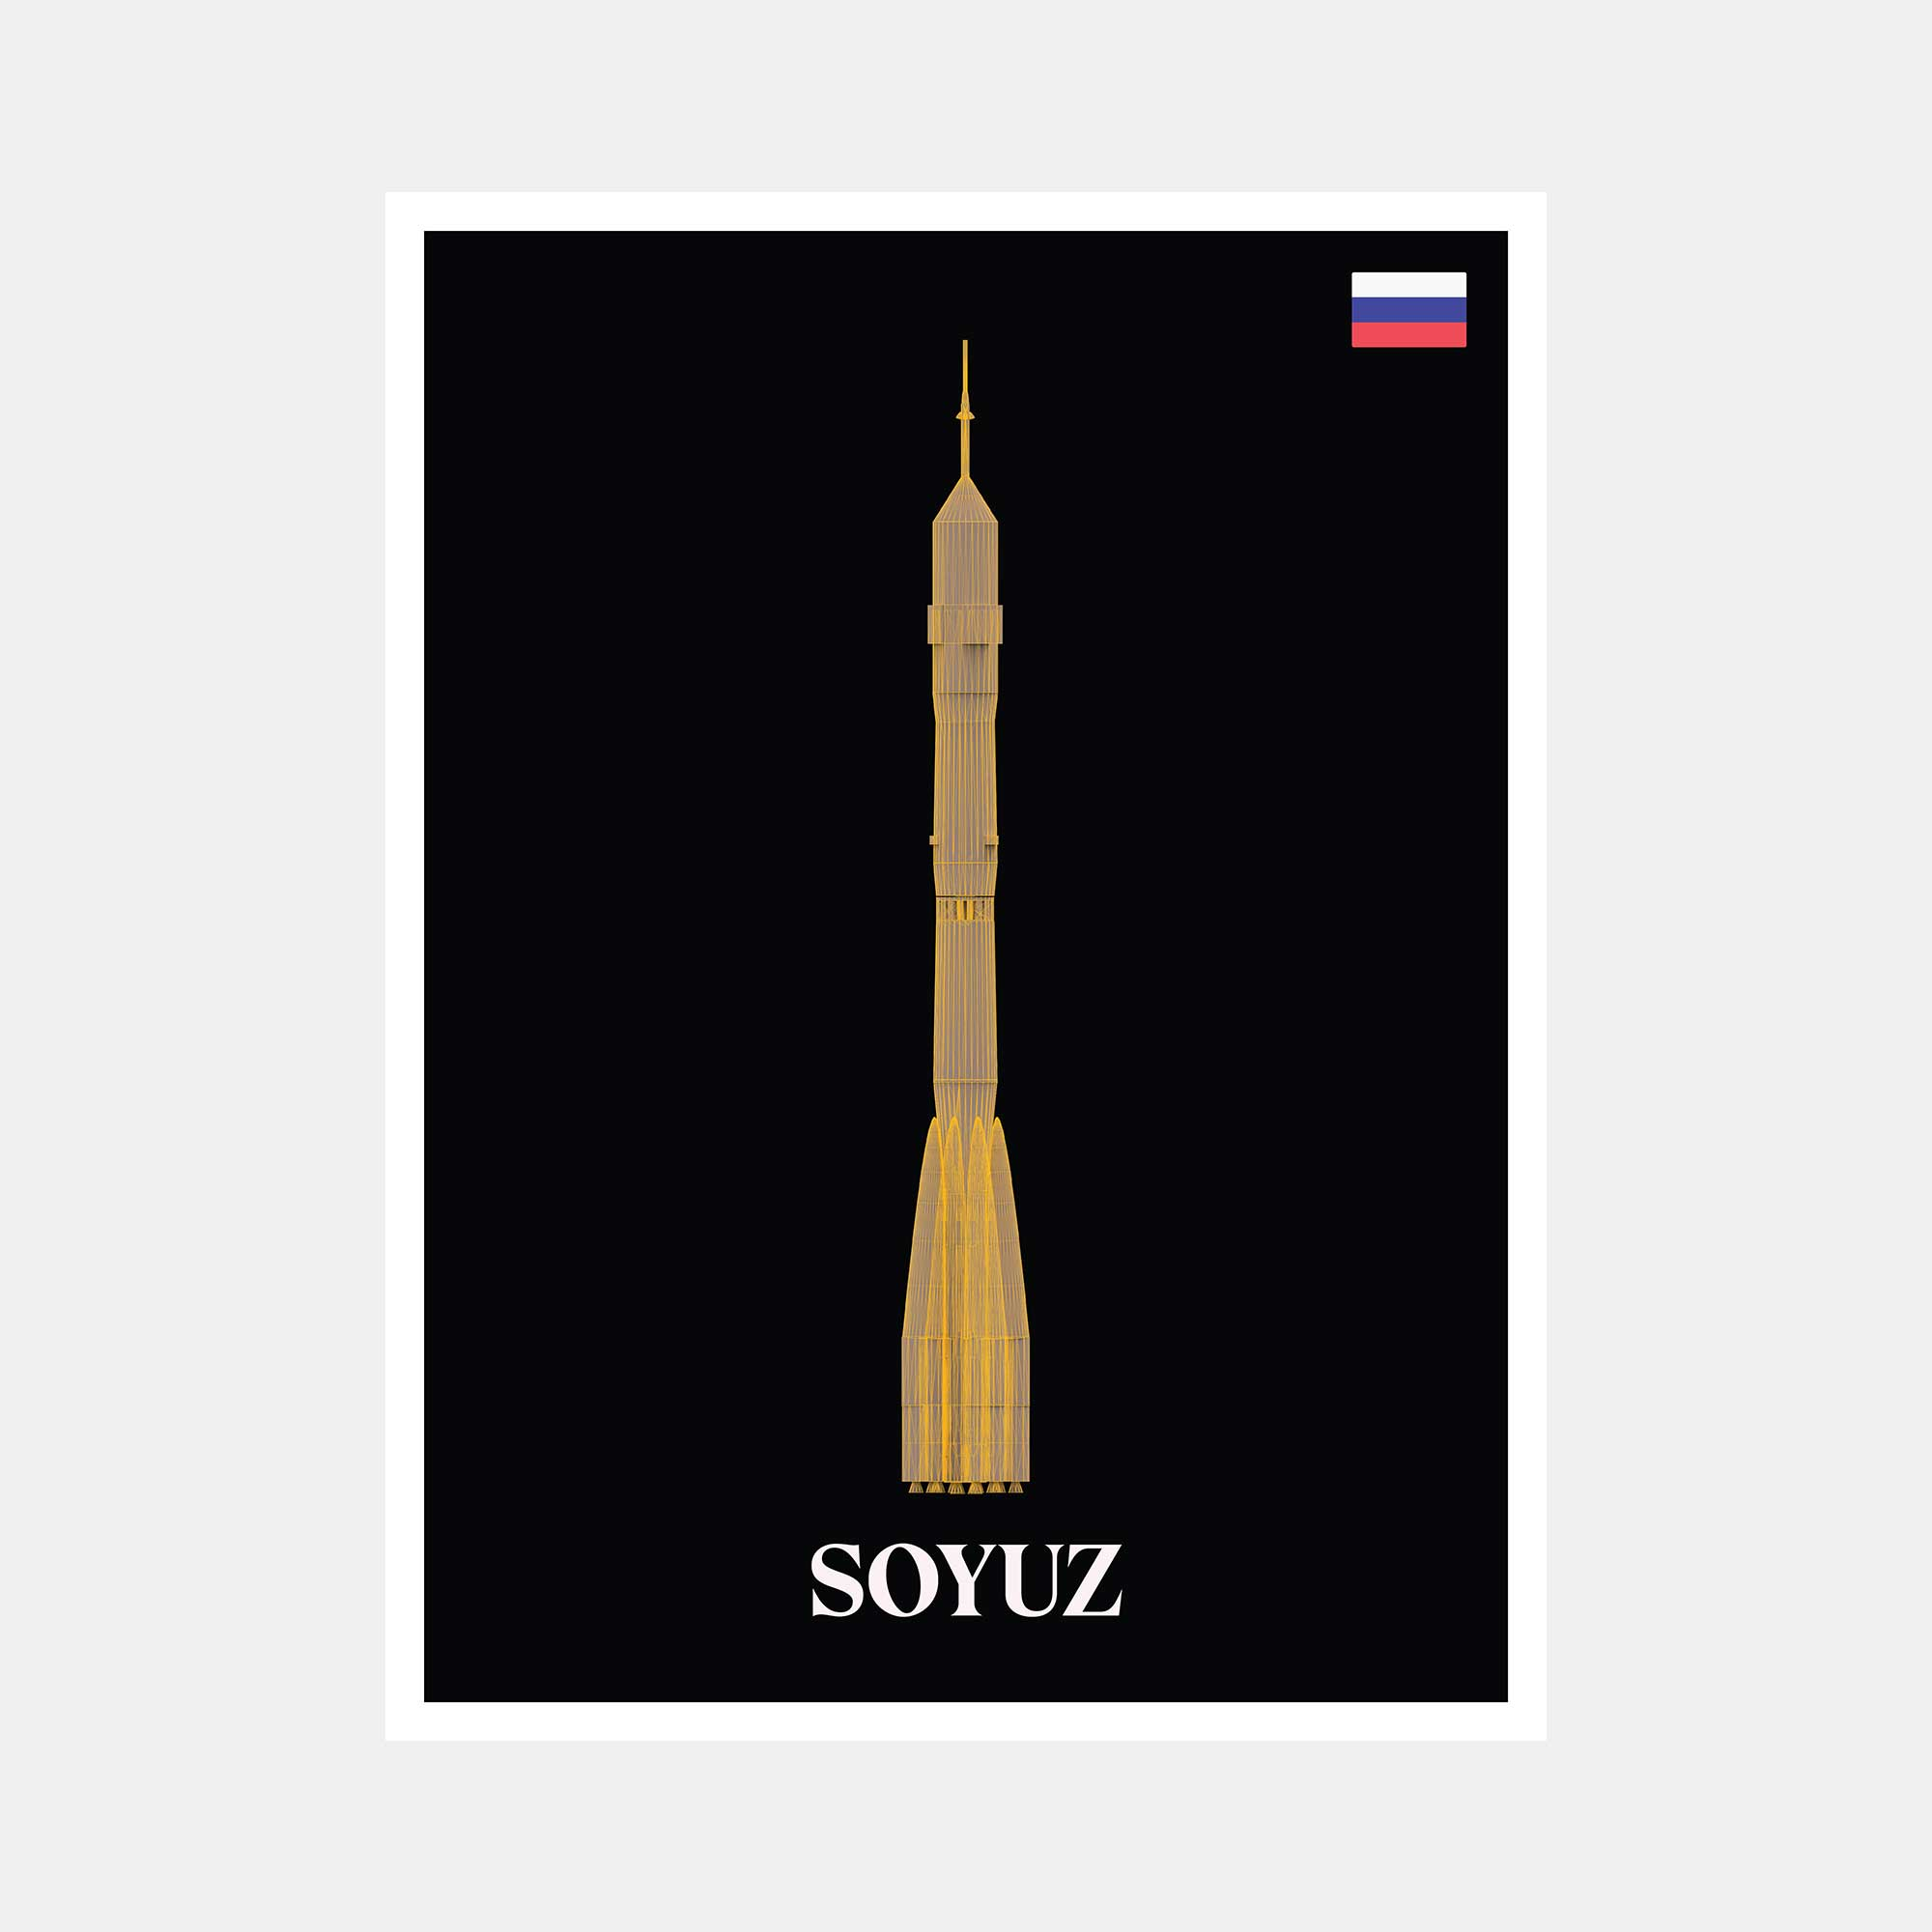 SOYUZ launch vehicle